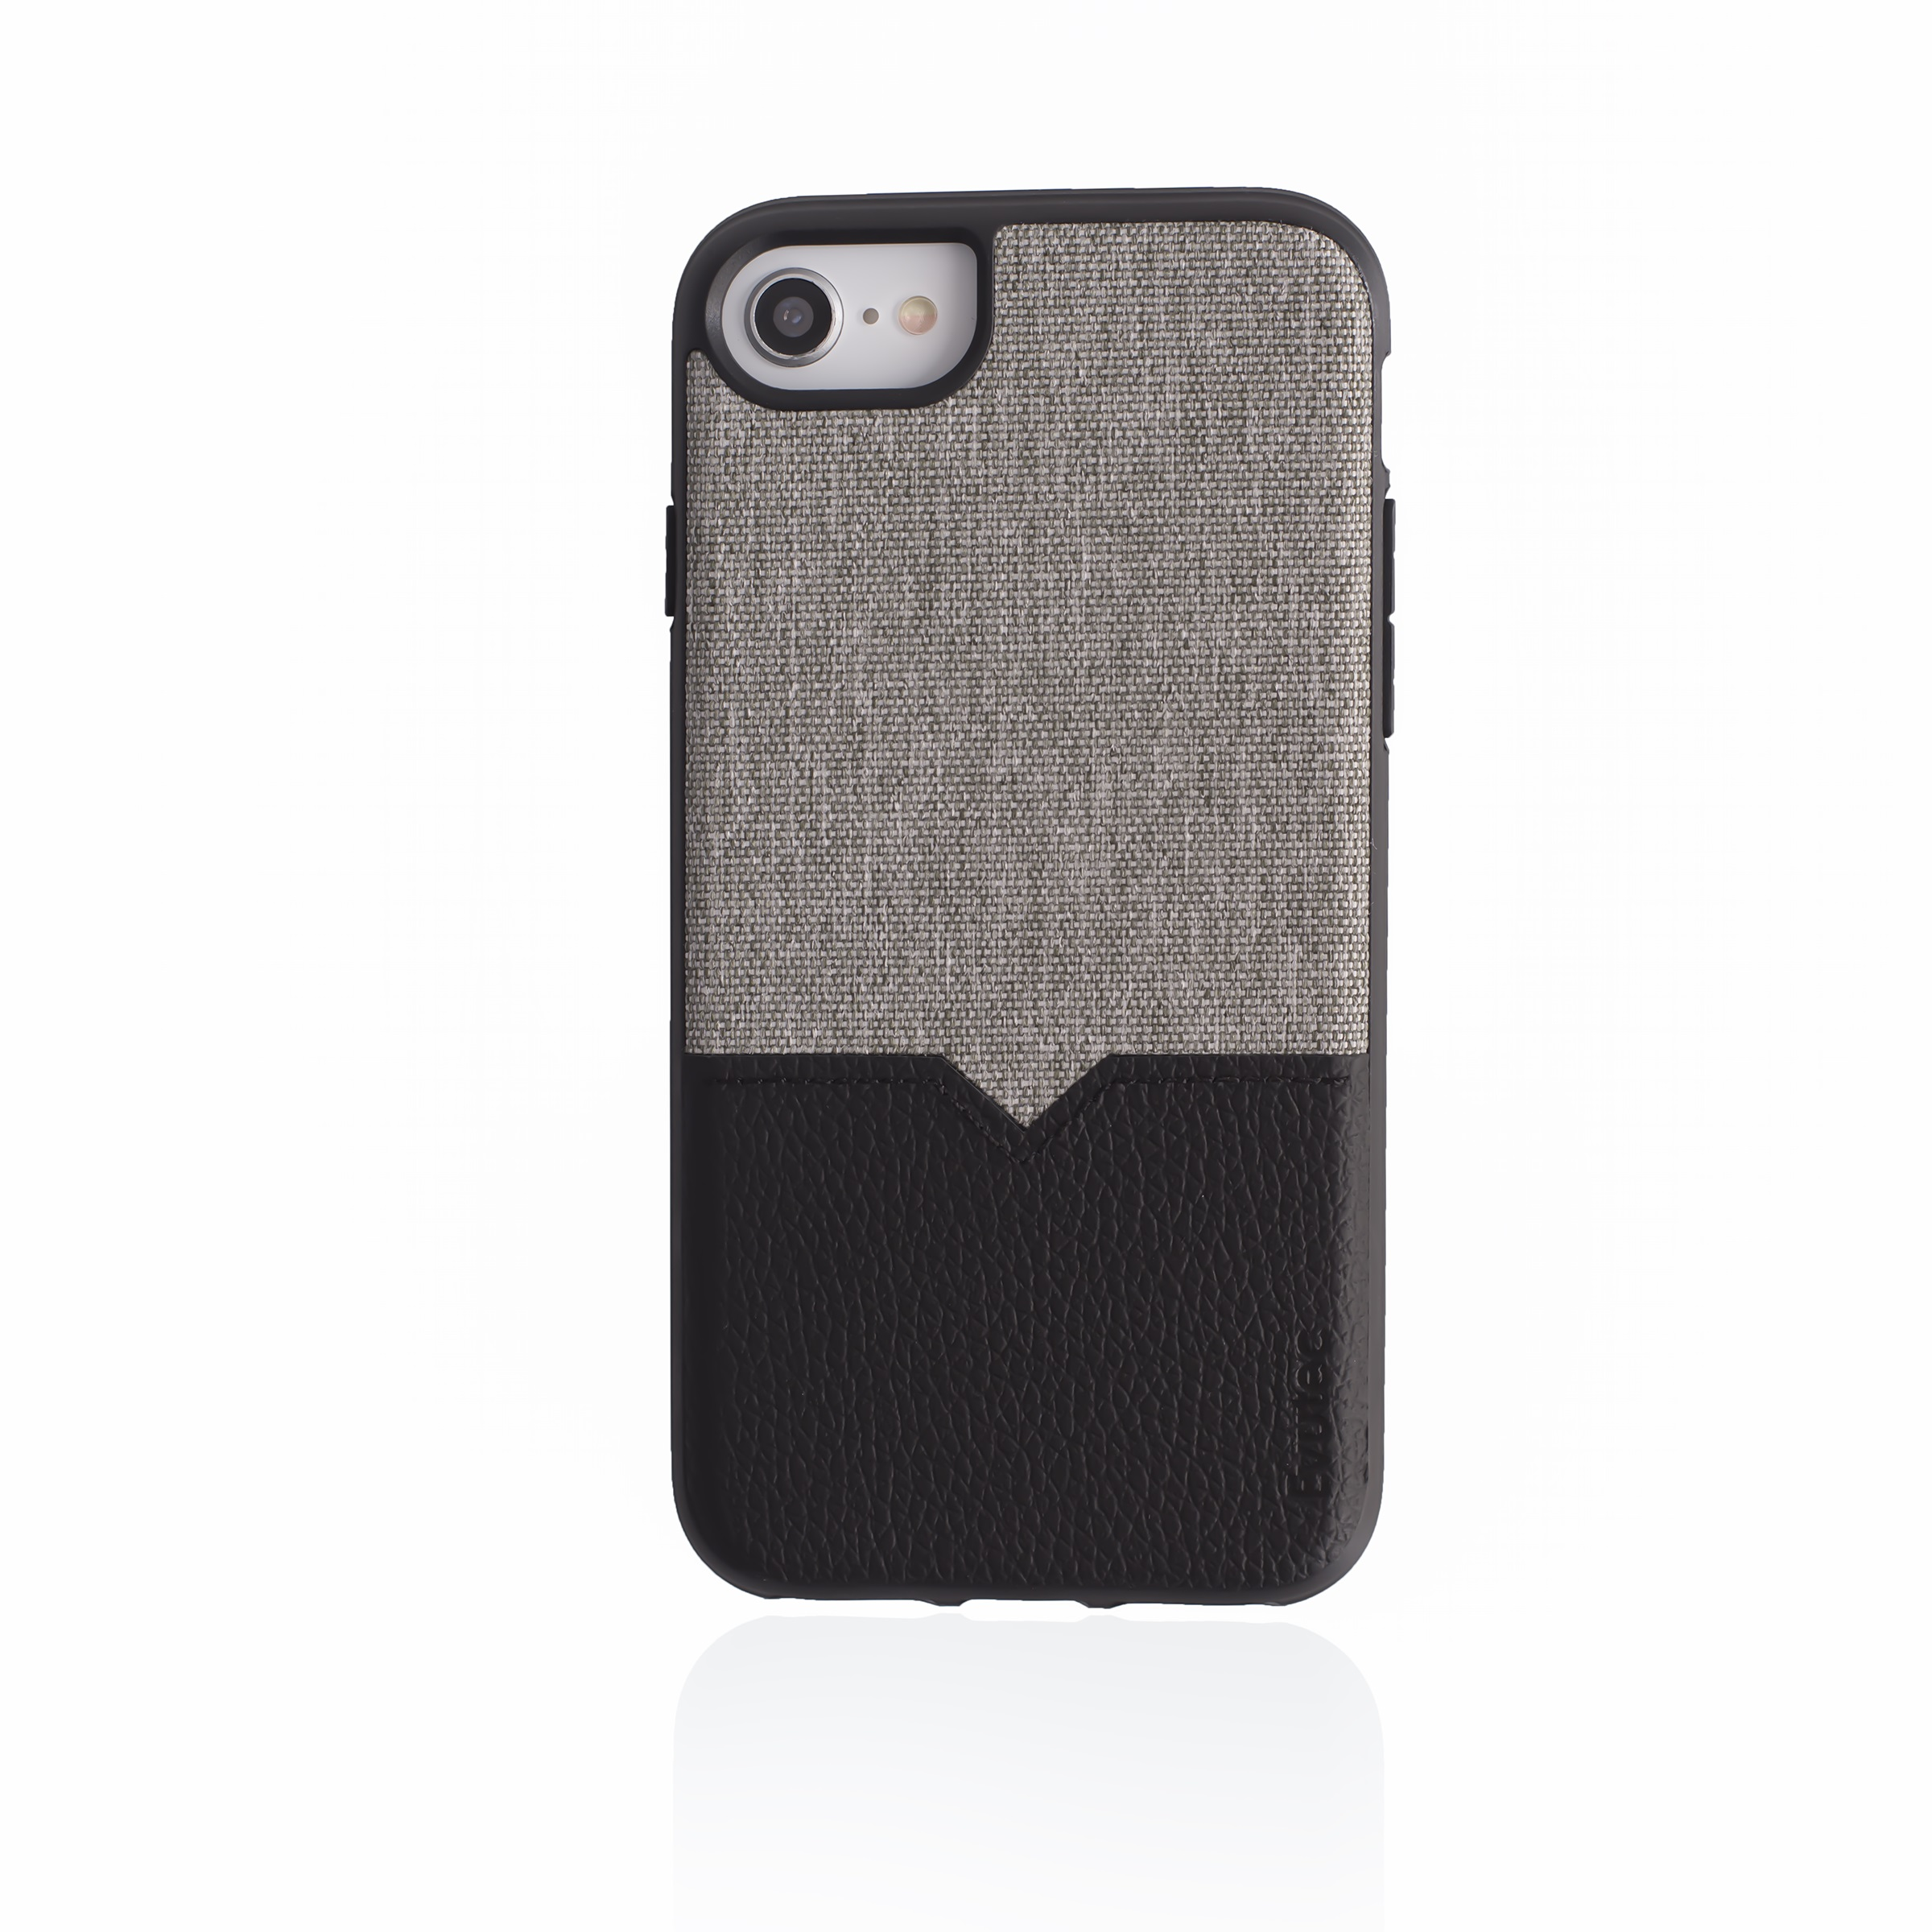 EVUTEC NH680MTD04 BLACK & GRAY IPHONE CASE FOR 6 6S 7 7S & 8